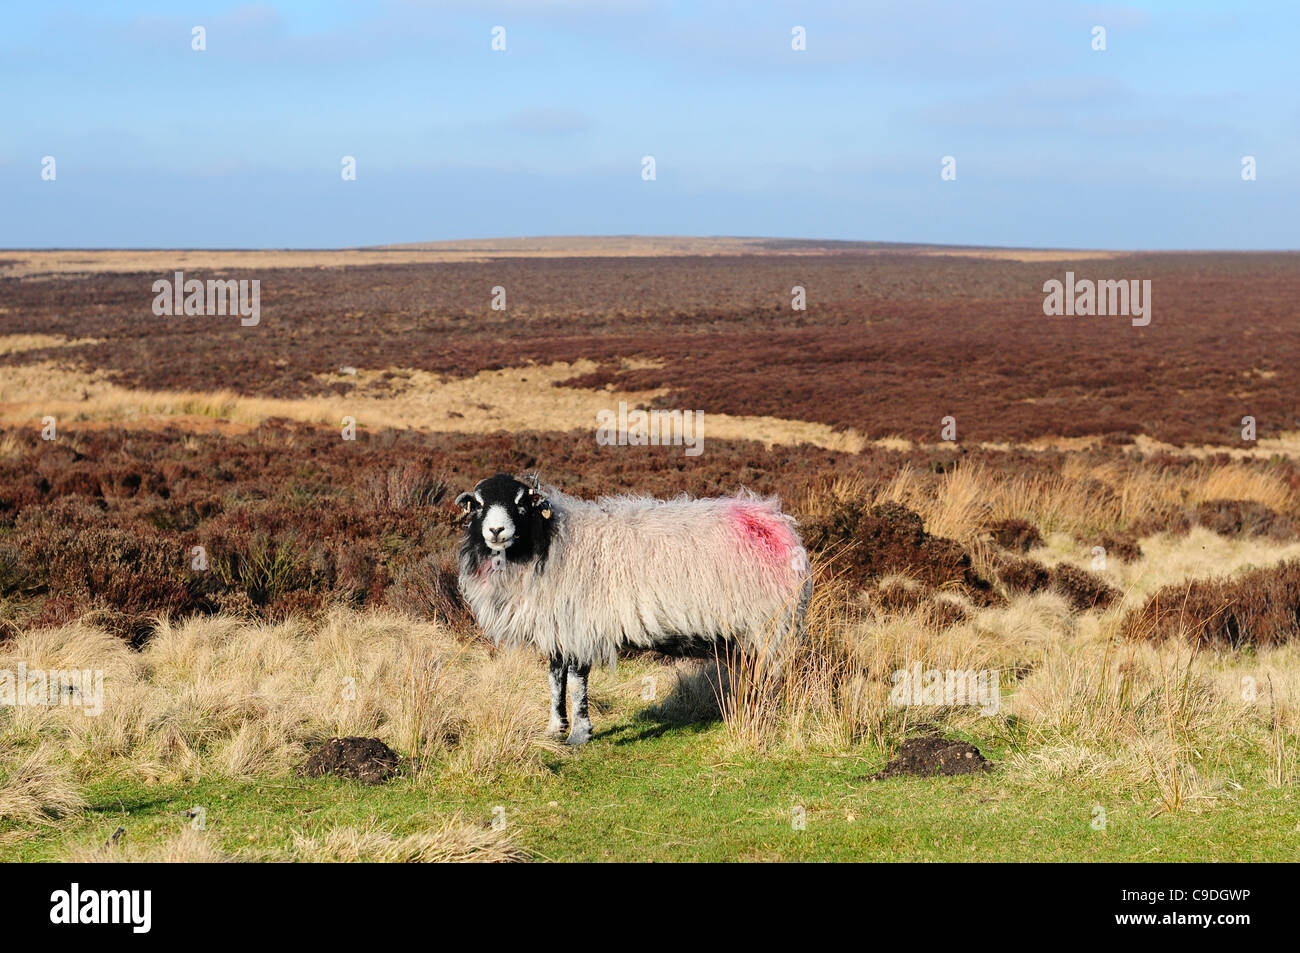 A horned ram / sheep at Stanage Edge, The Peak Districk, England - Stock Image